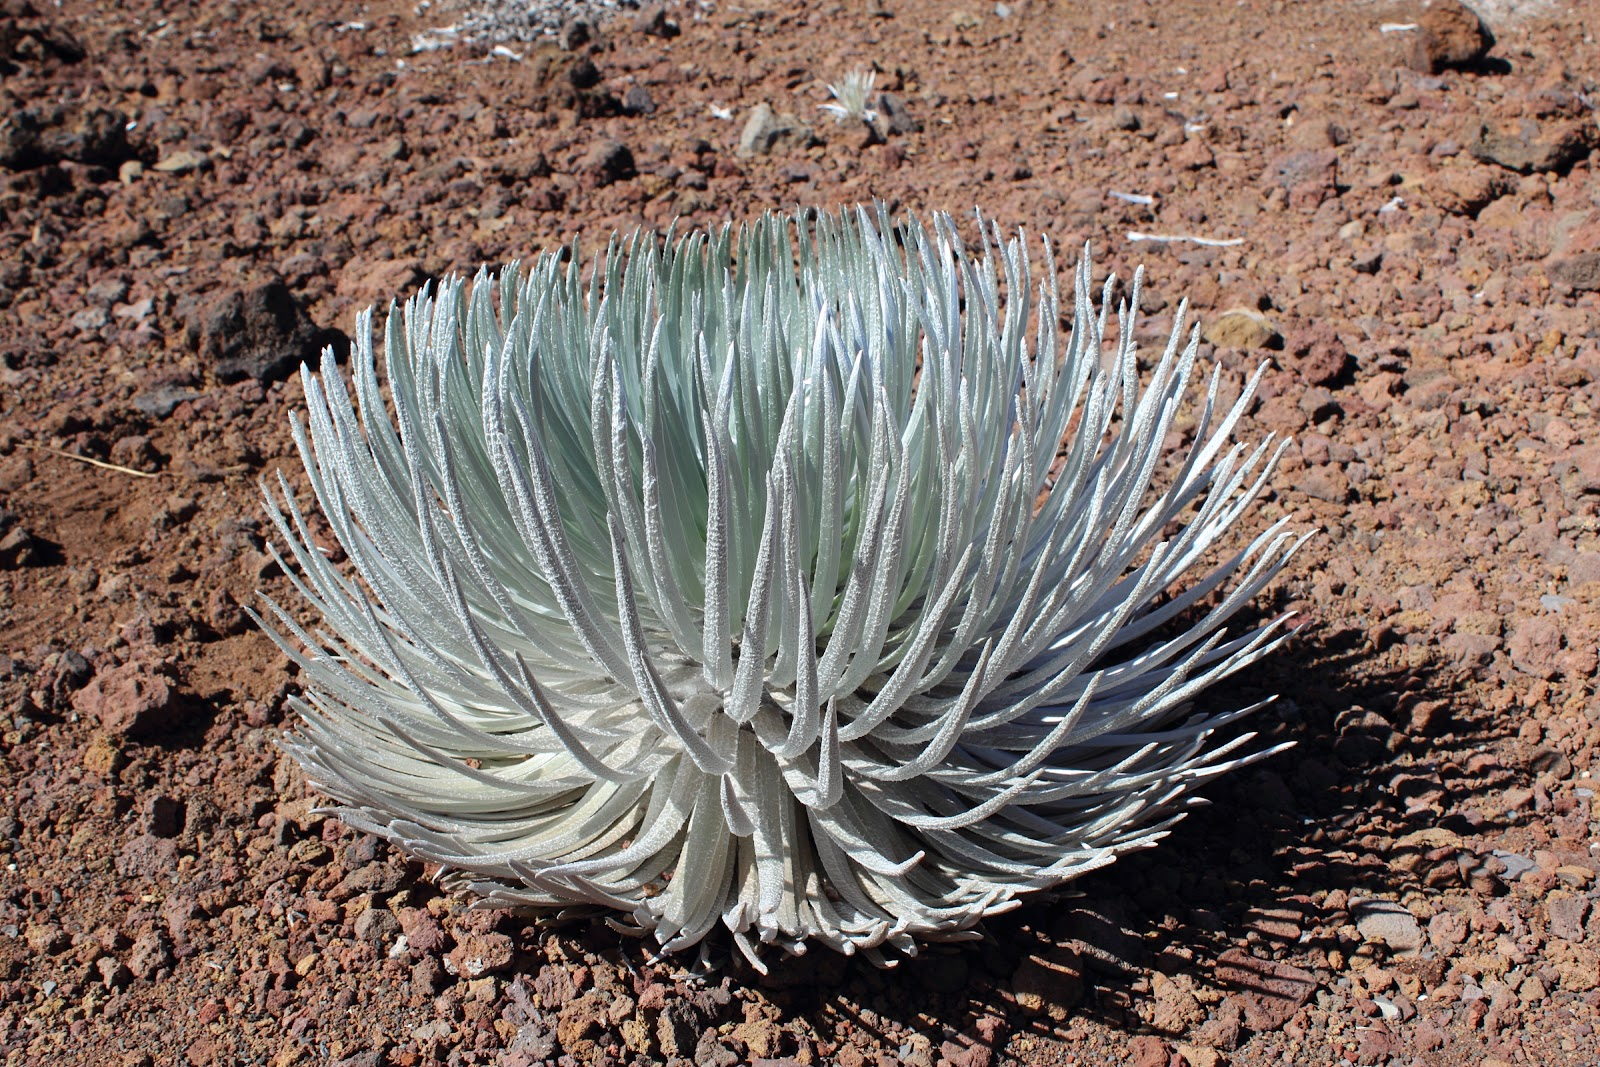 Haleakalā Silversword: a rare plant only found on Haleakala